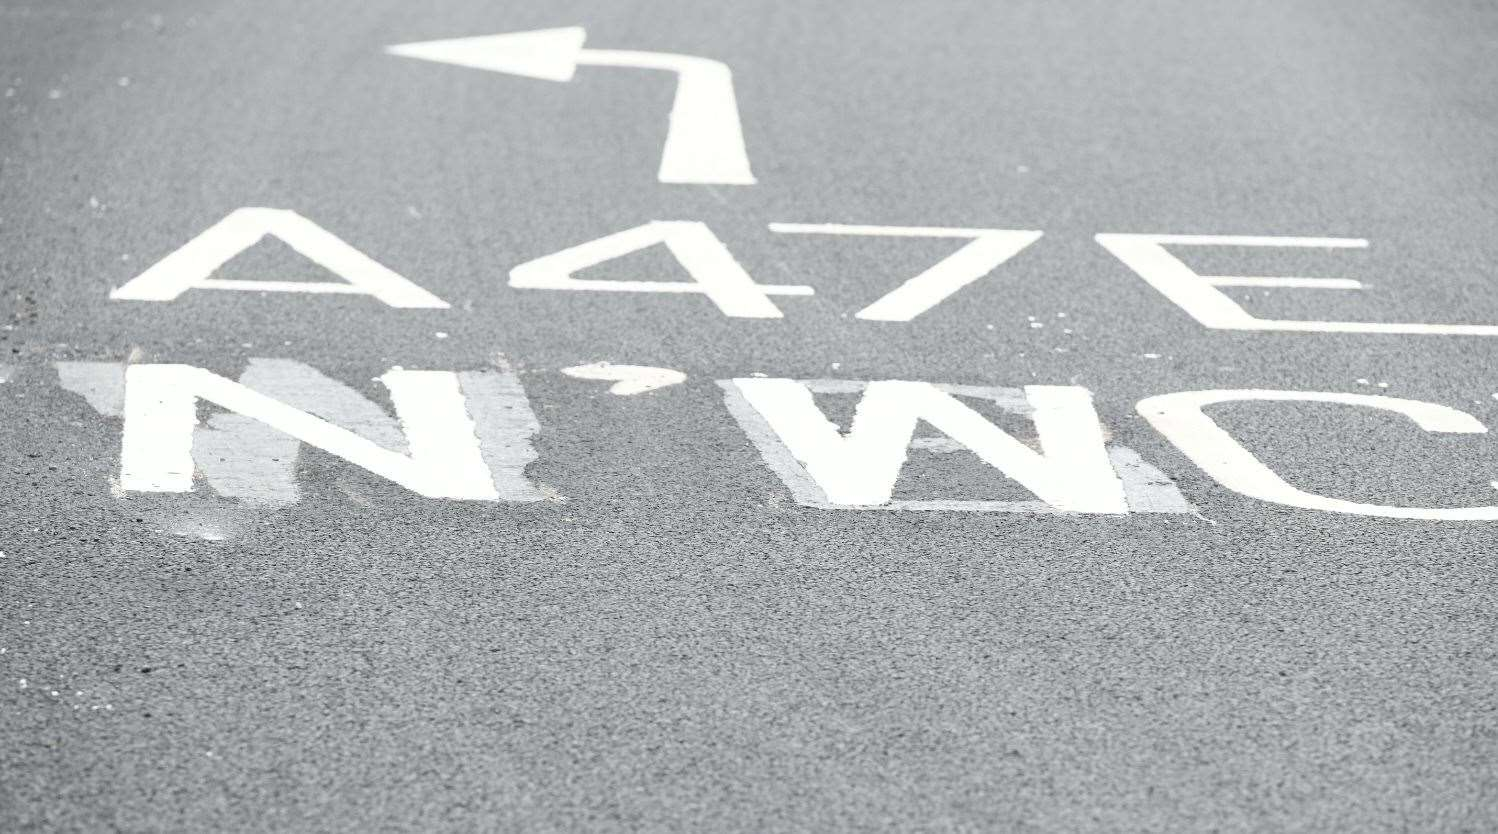 New markings have been painted over where the erroneous direction was laid (50339230)